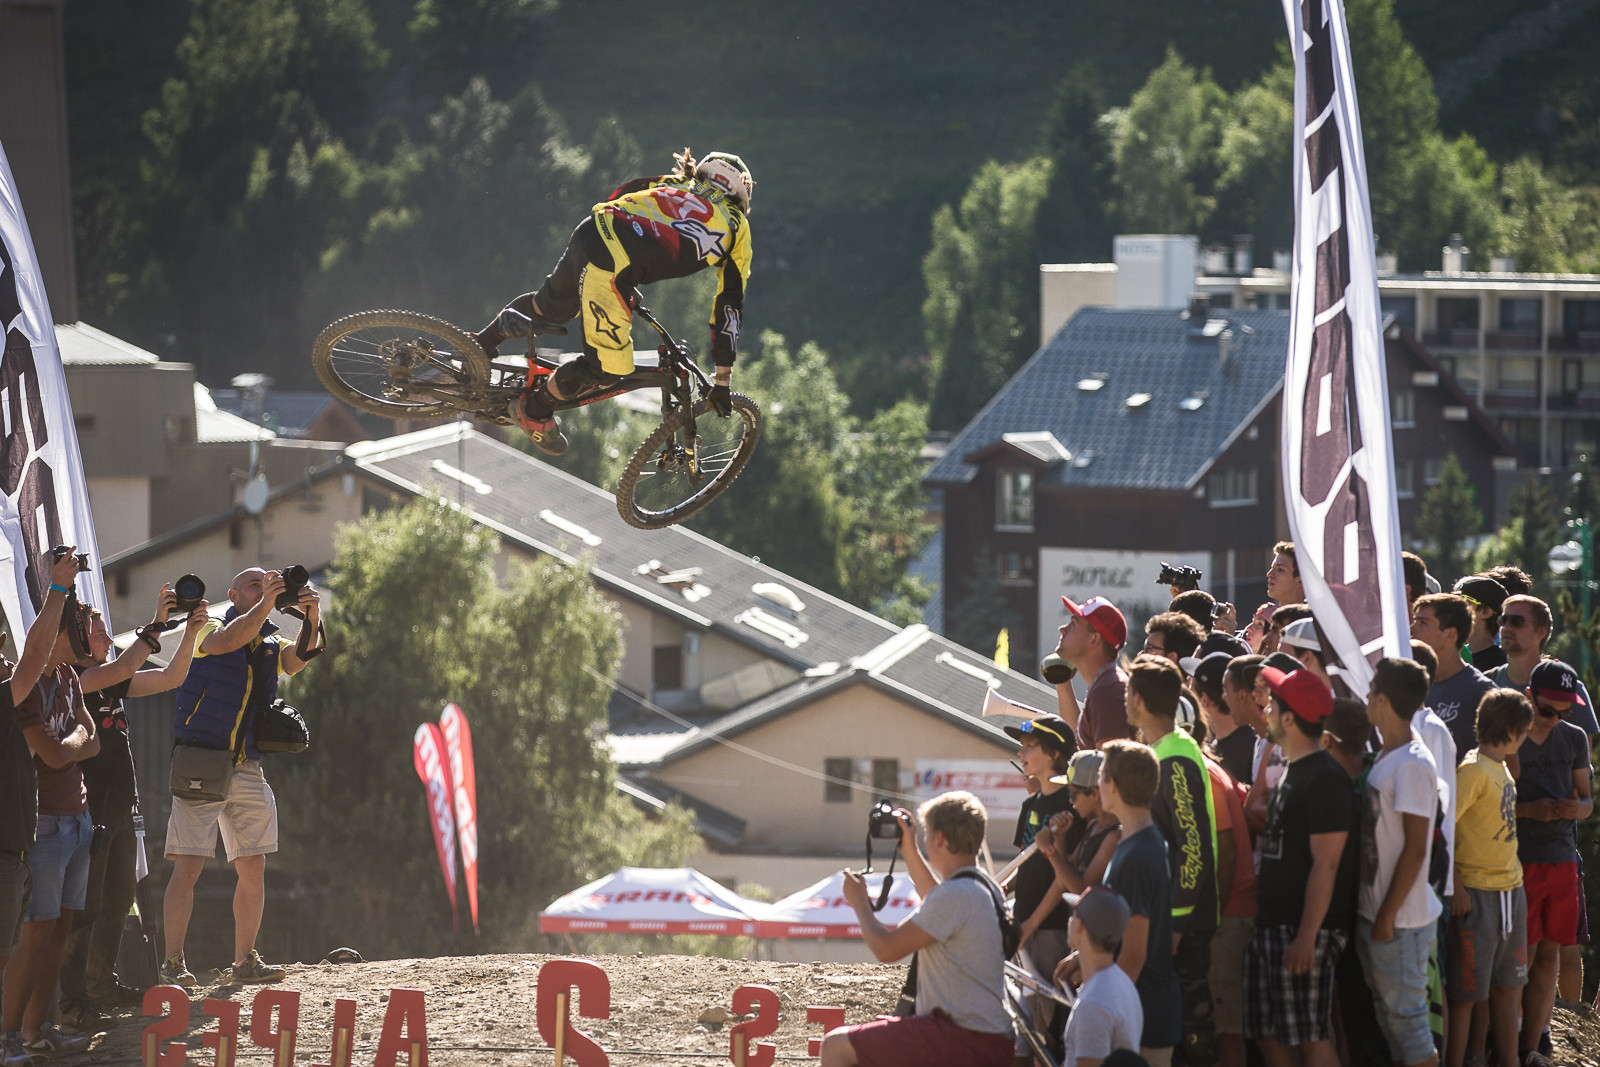 Remy Morton, Whip Off European Champs, Crankworx L2A - Whip Off European Champs, Crankworx L2A - Mountain Biking Pictures - Vital MTB